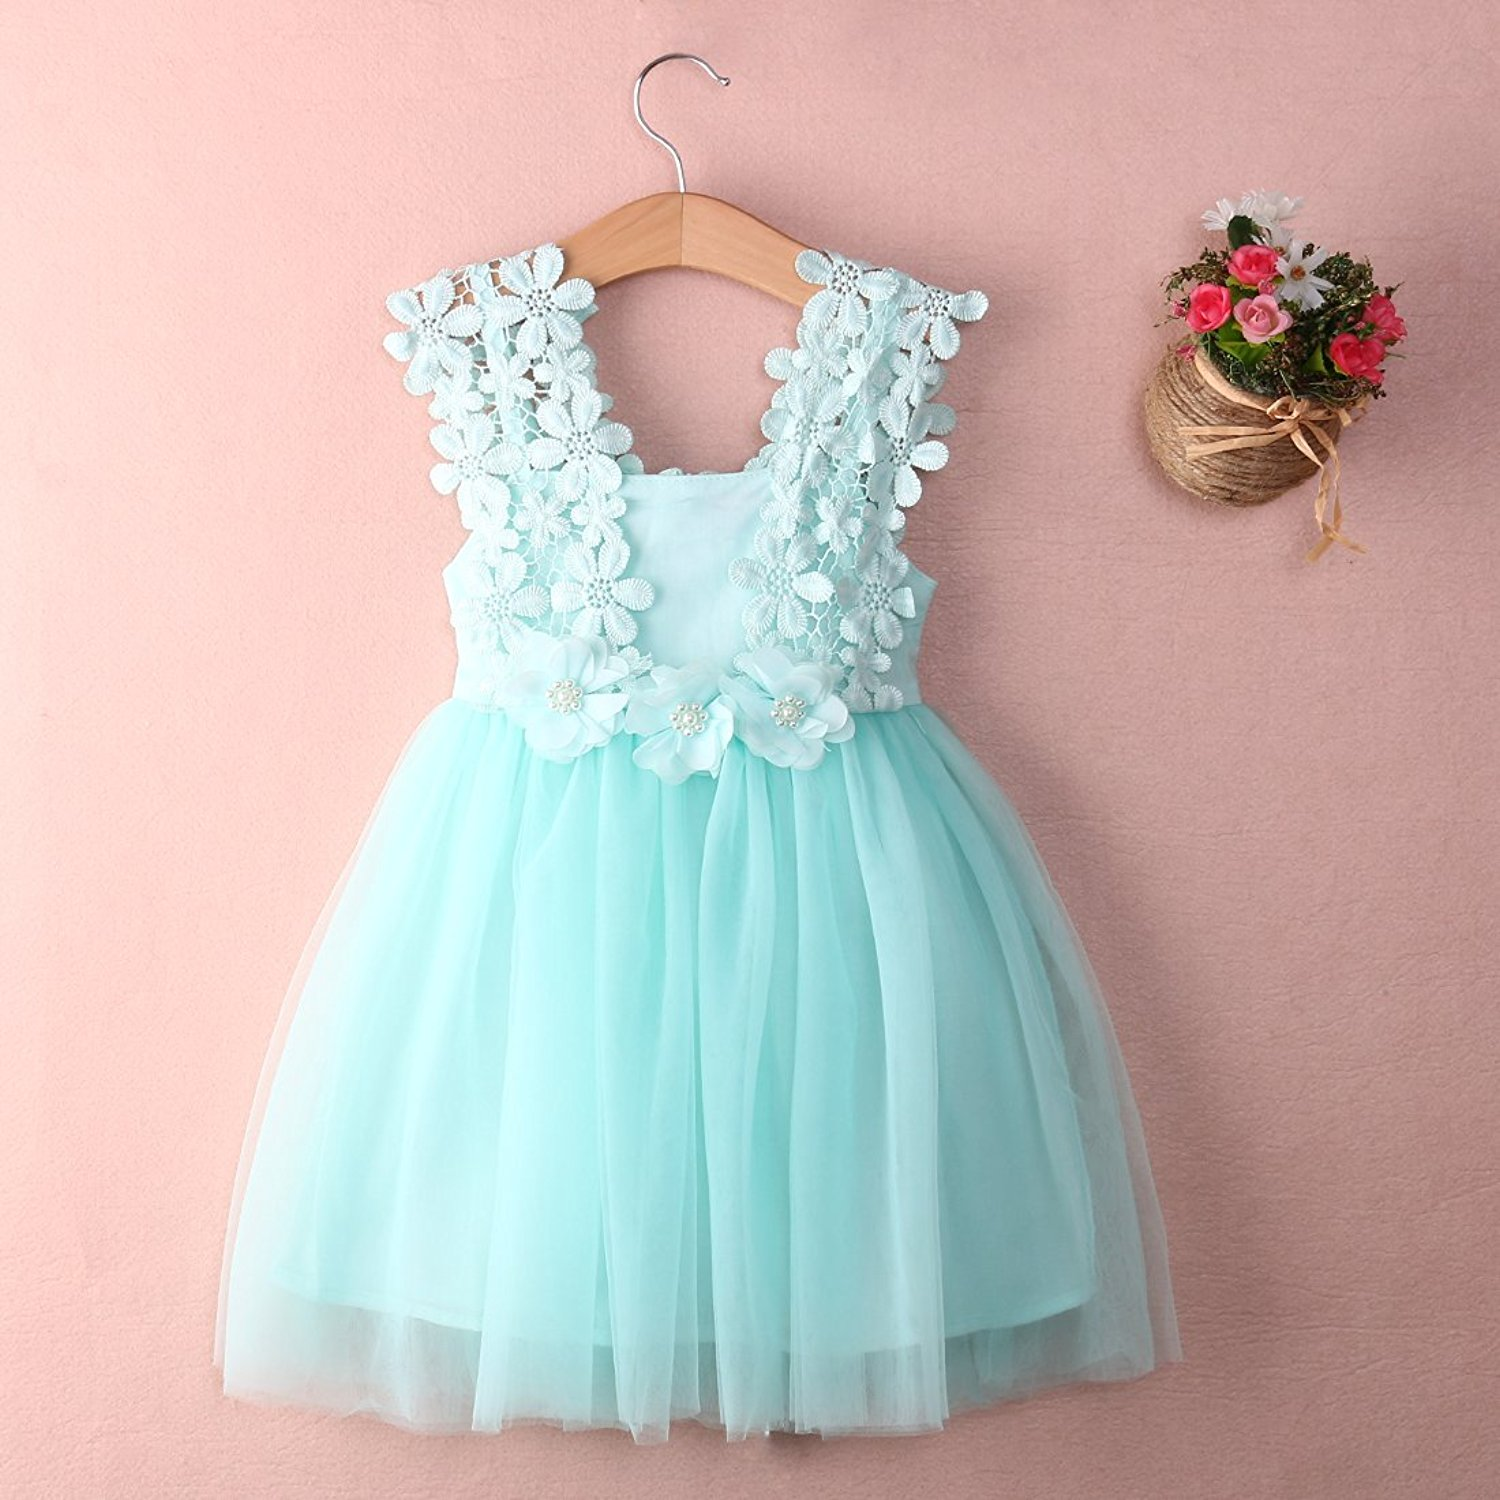 5e57980e643 Elegant Baby Girl Dresses - Data Dynamic AG